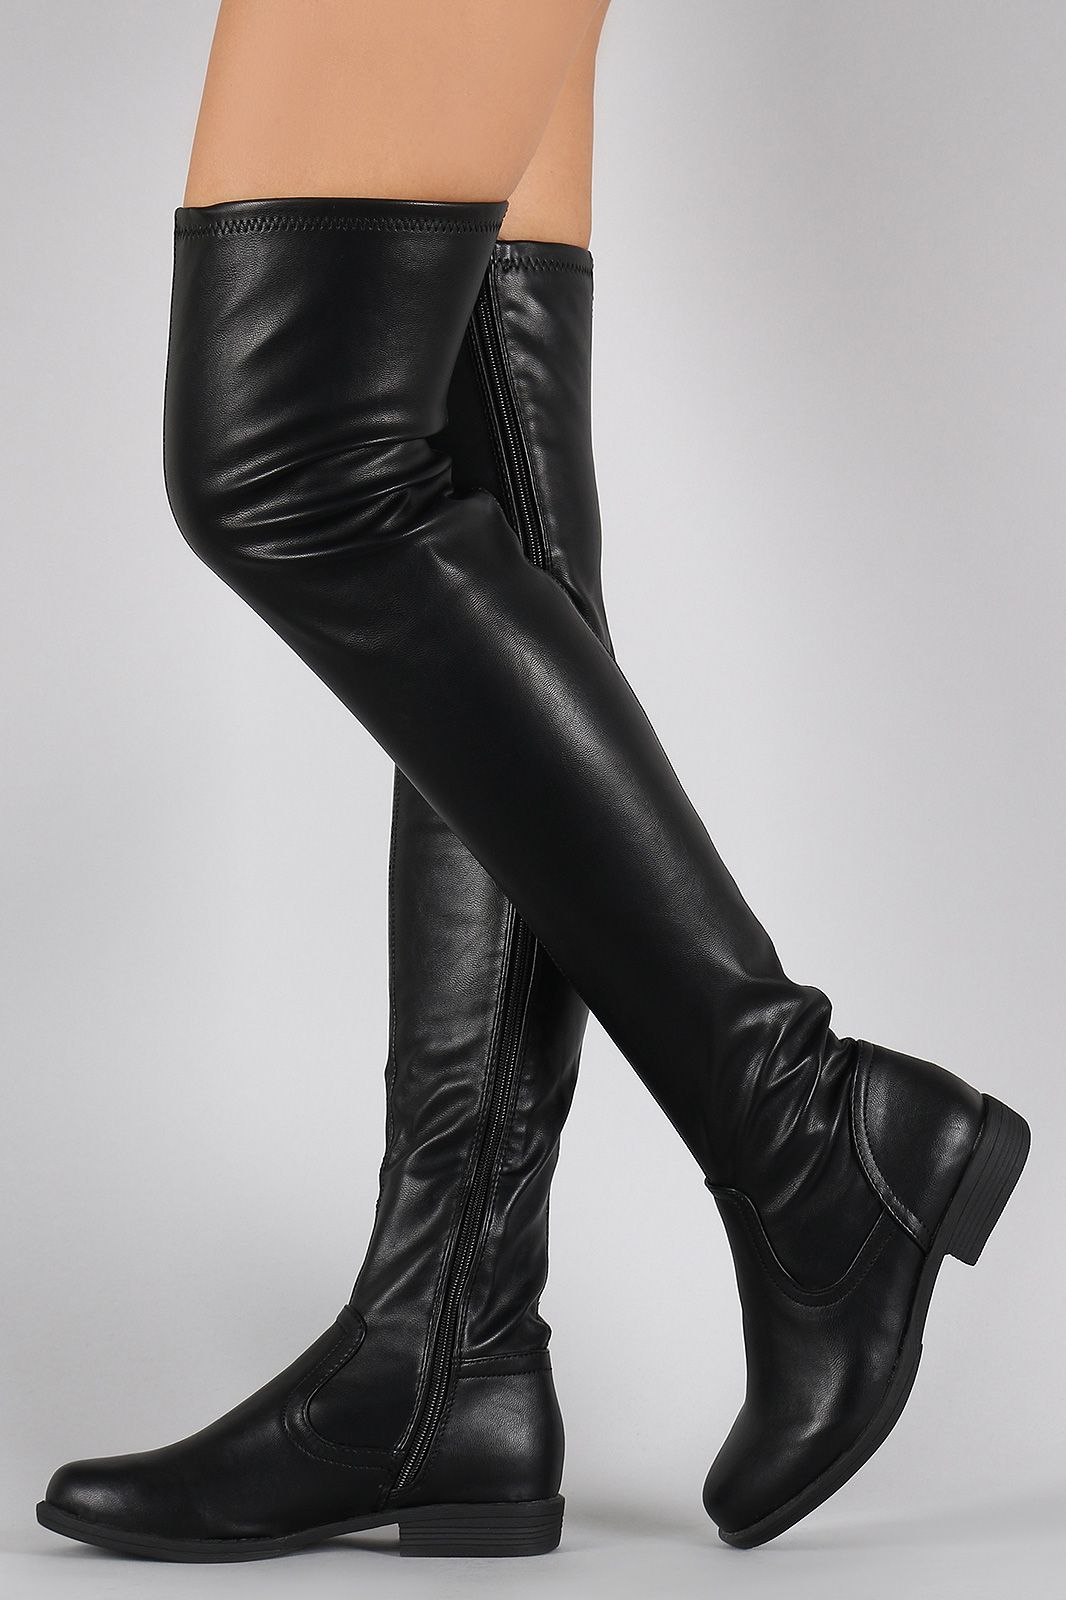 89302c676146 Bamboo Vegan Leather Flat Thigh High Boots